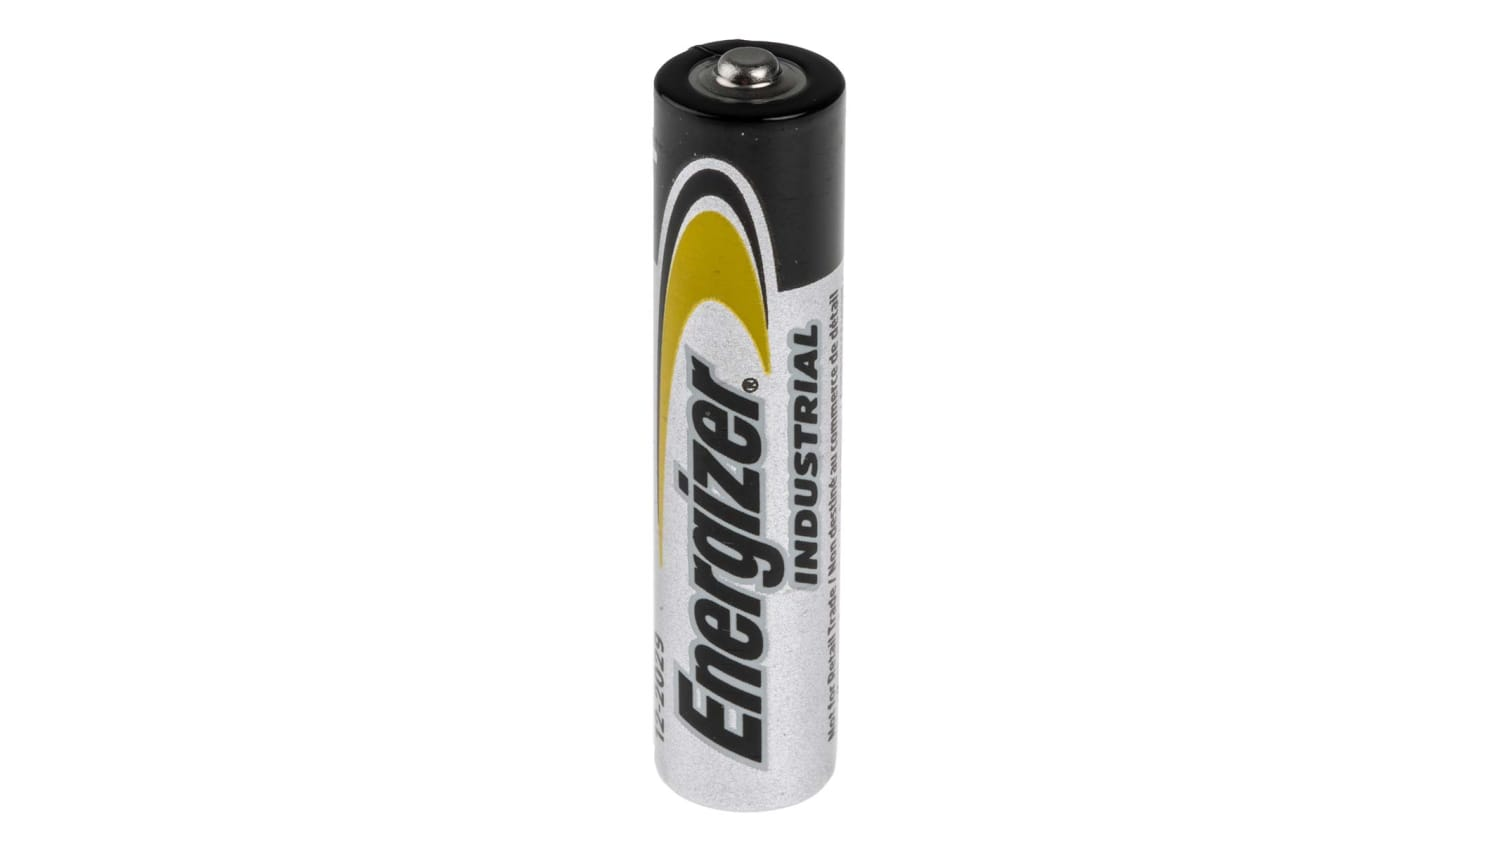 7638900361063 Energizer Industrial Alkaline Aaa Batteries 1 5v 10 Pack Rs Components